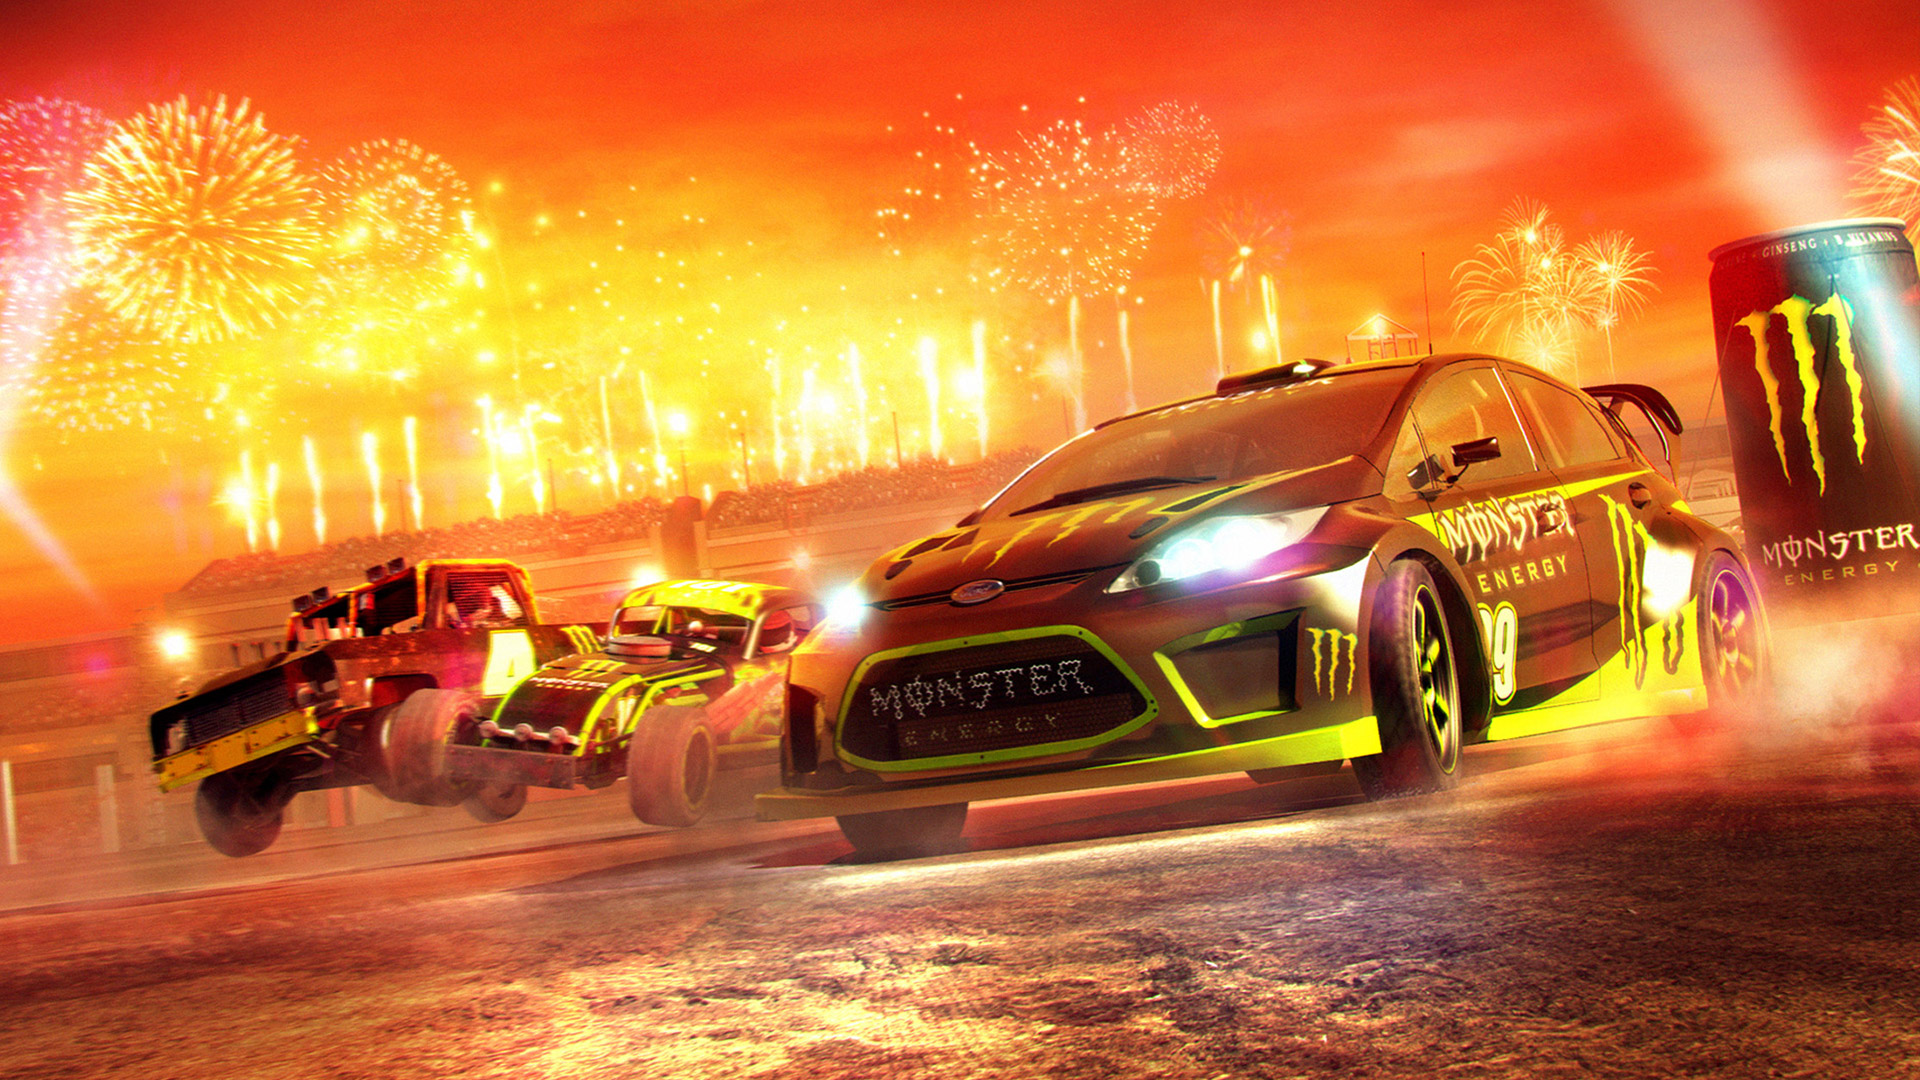 Dirt: Showdown Wallpaper in 1920x1080